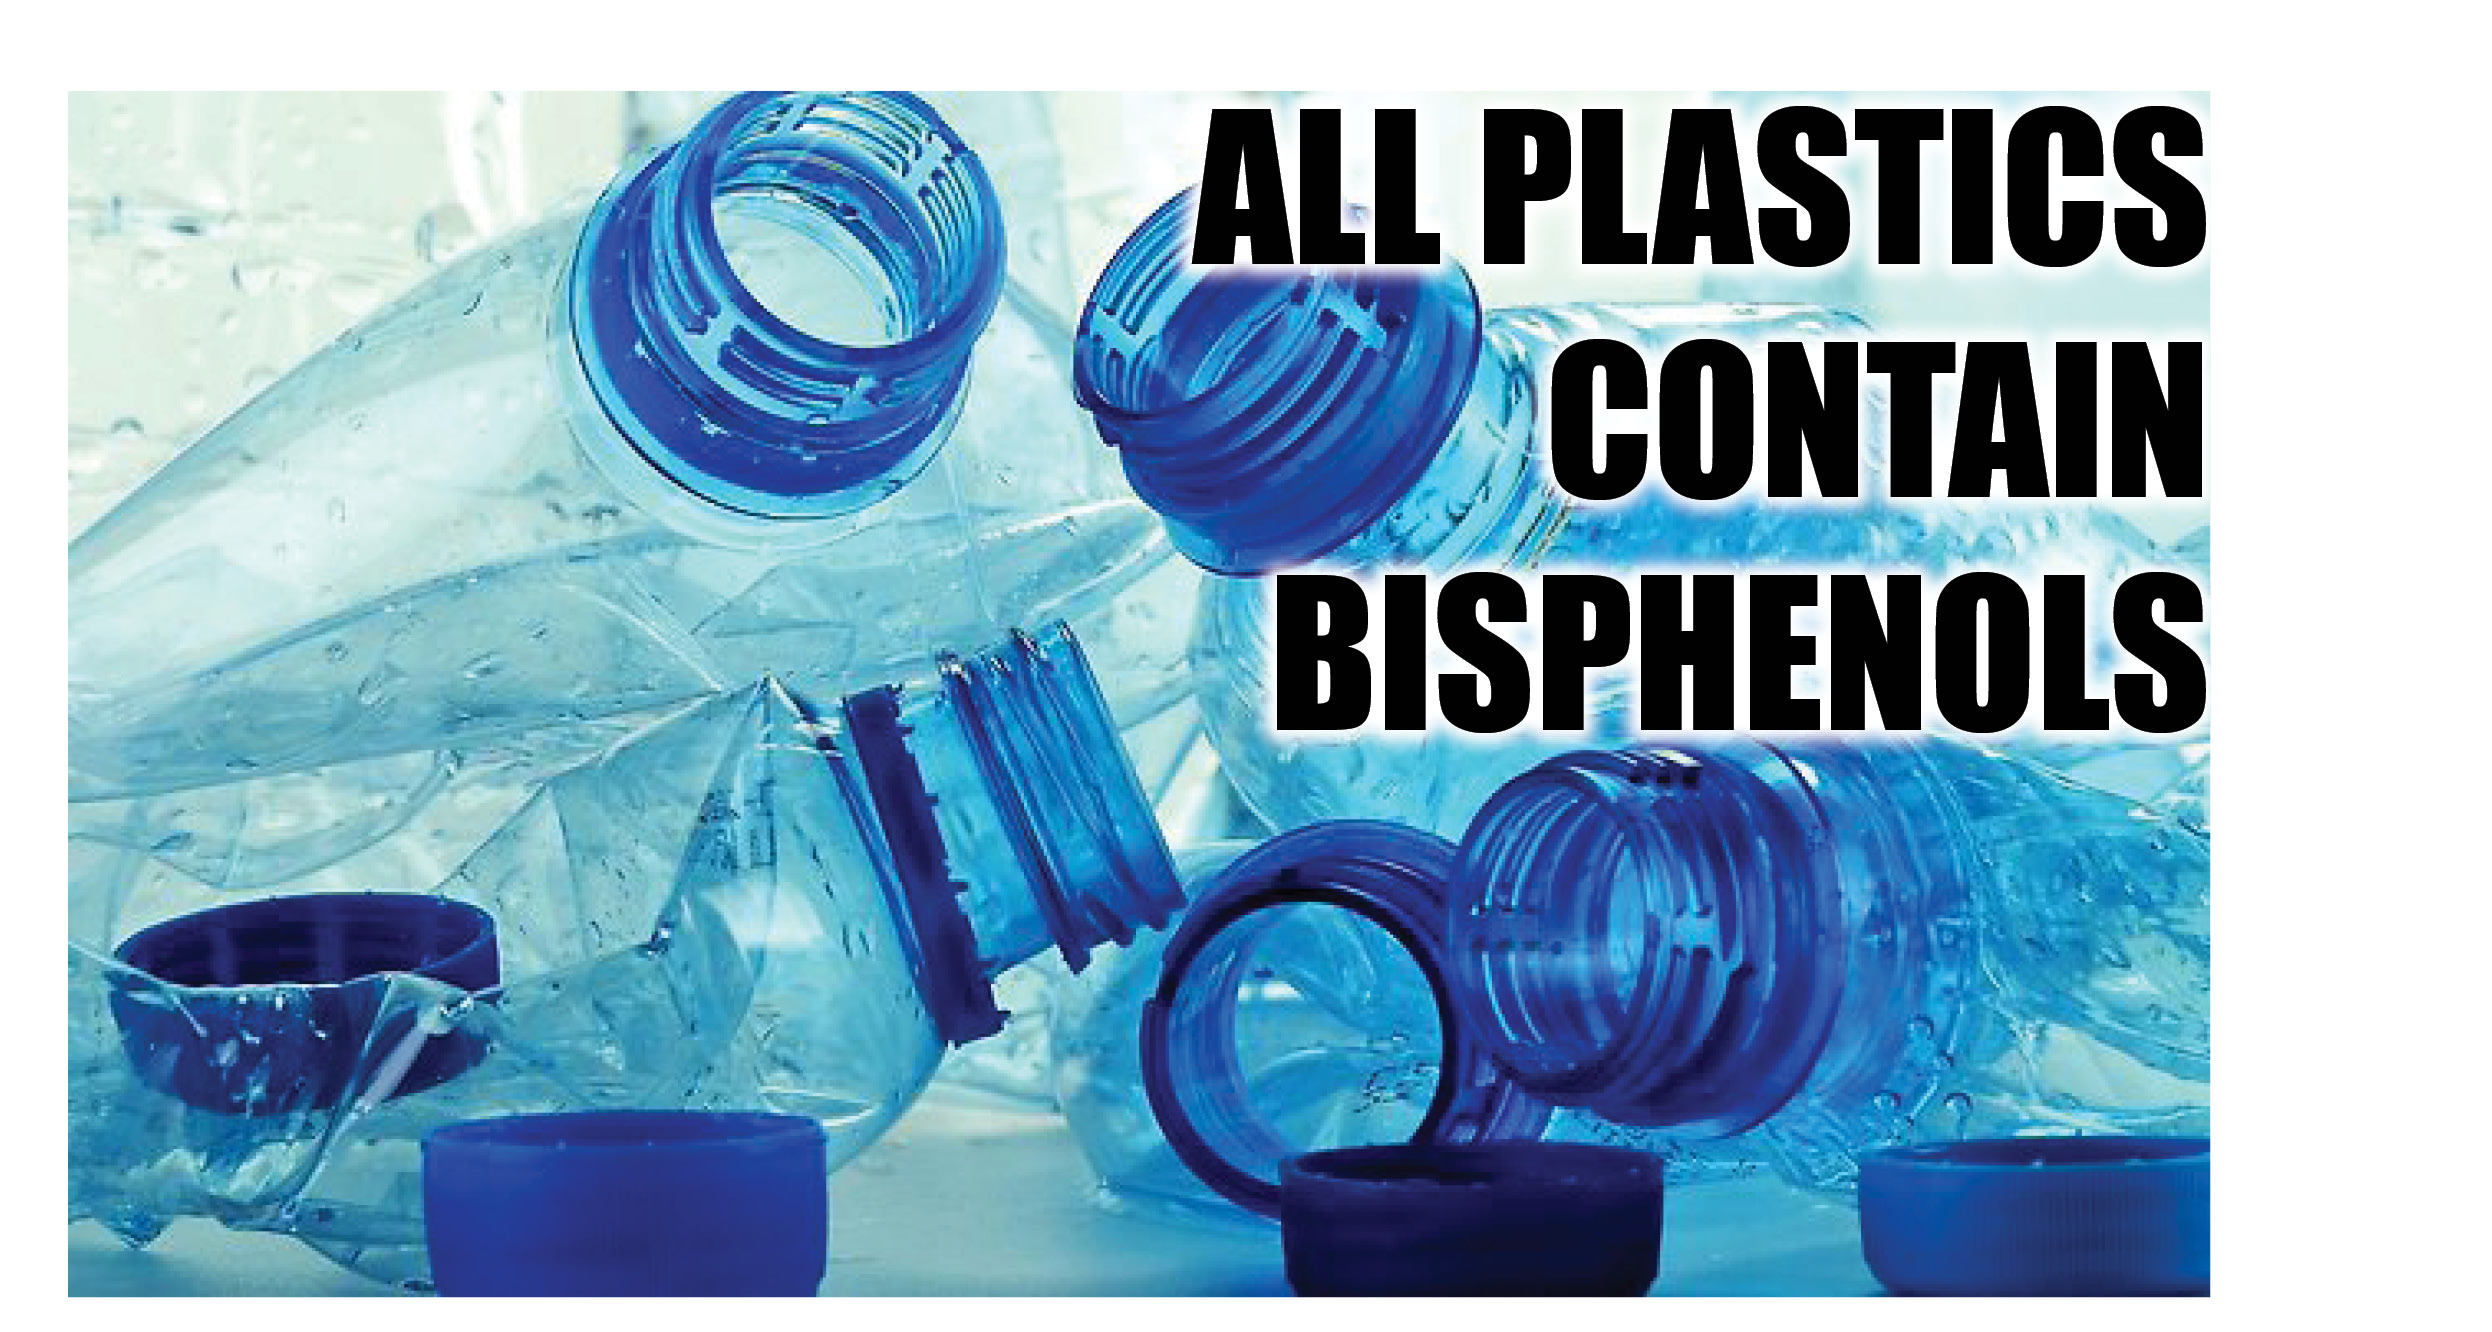 http://realnewsaustralia.files.wordpress.com/2013/07/bpa-plastic.jpg